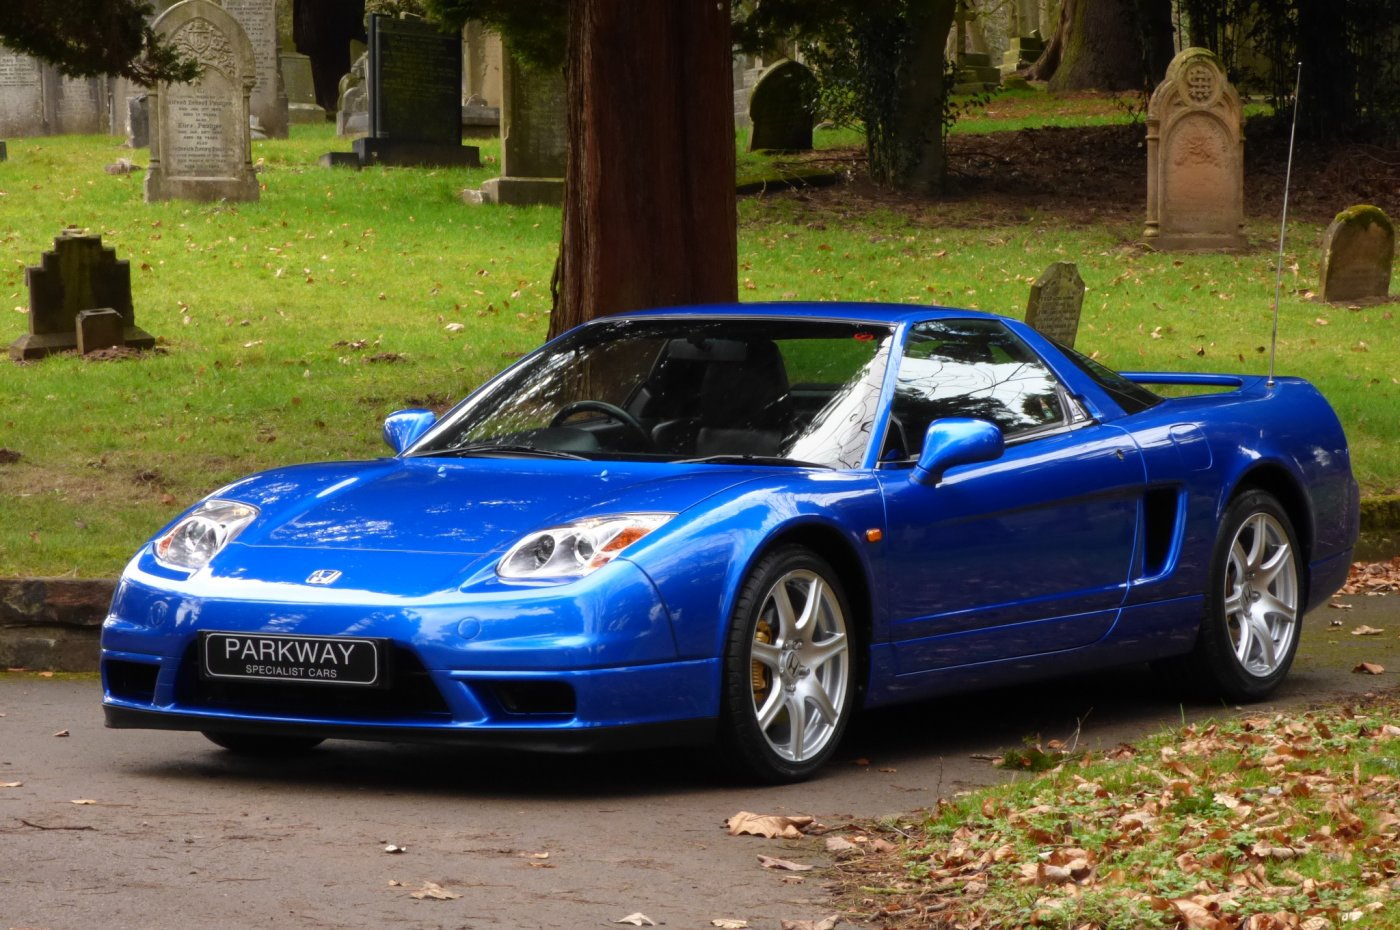 For Sale: Jenson Button\'s Old 2004 Honda NSX - The Drive